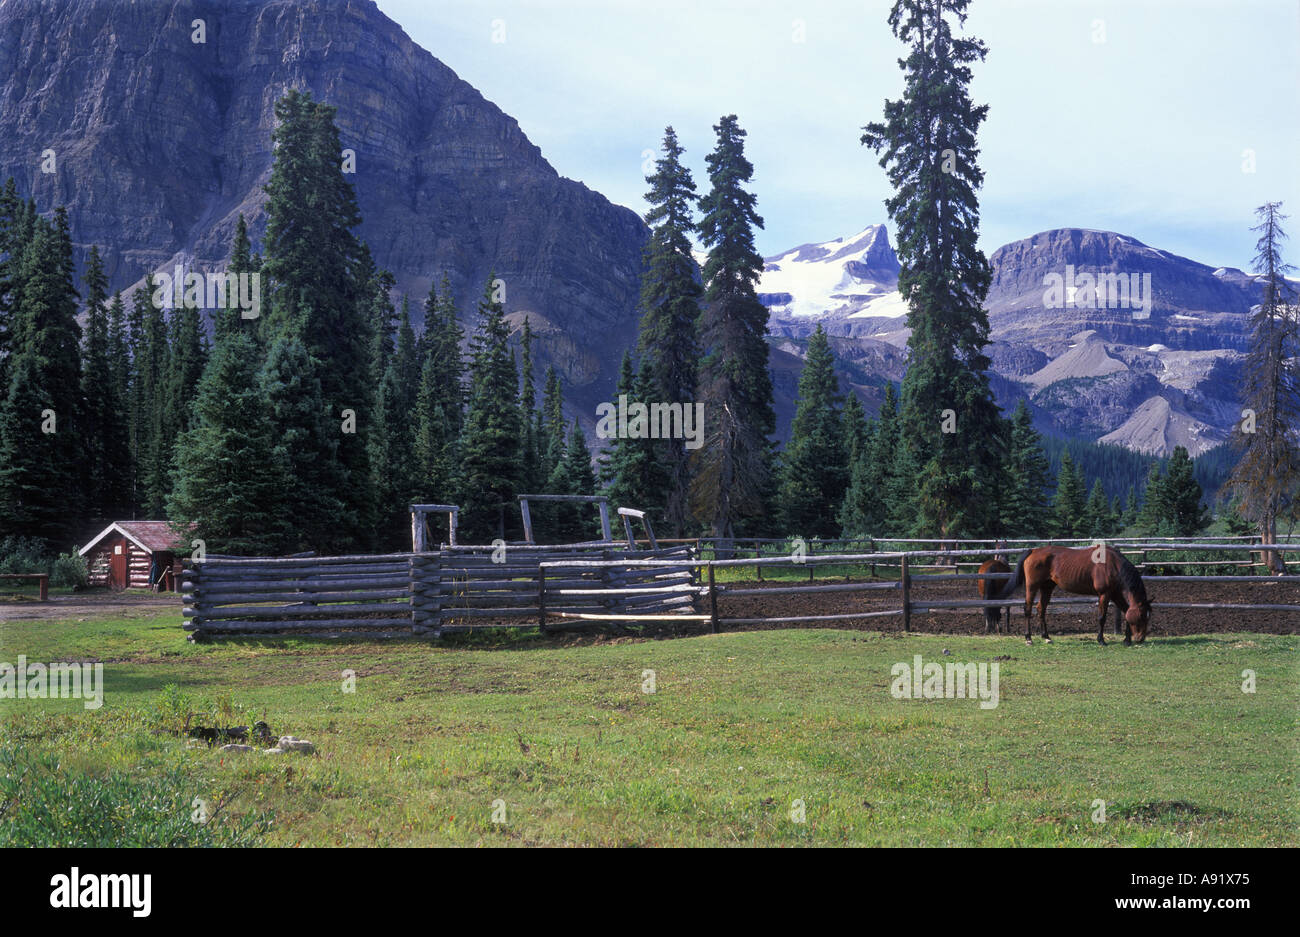 Log Cabin Horse And Corral At Ranch In Banff National